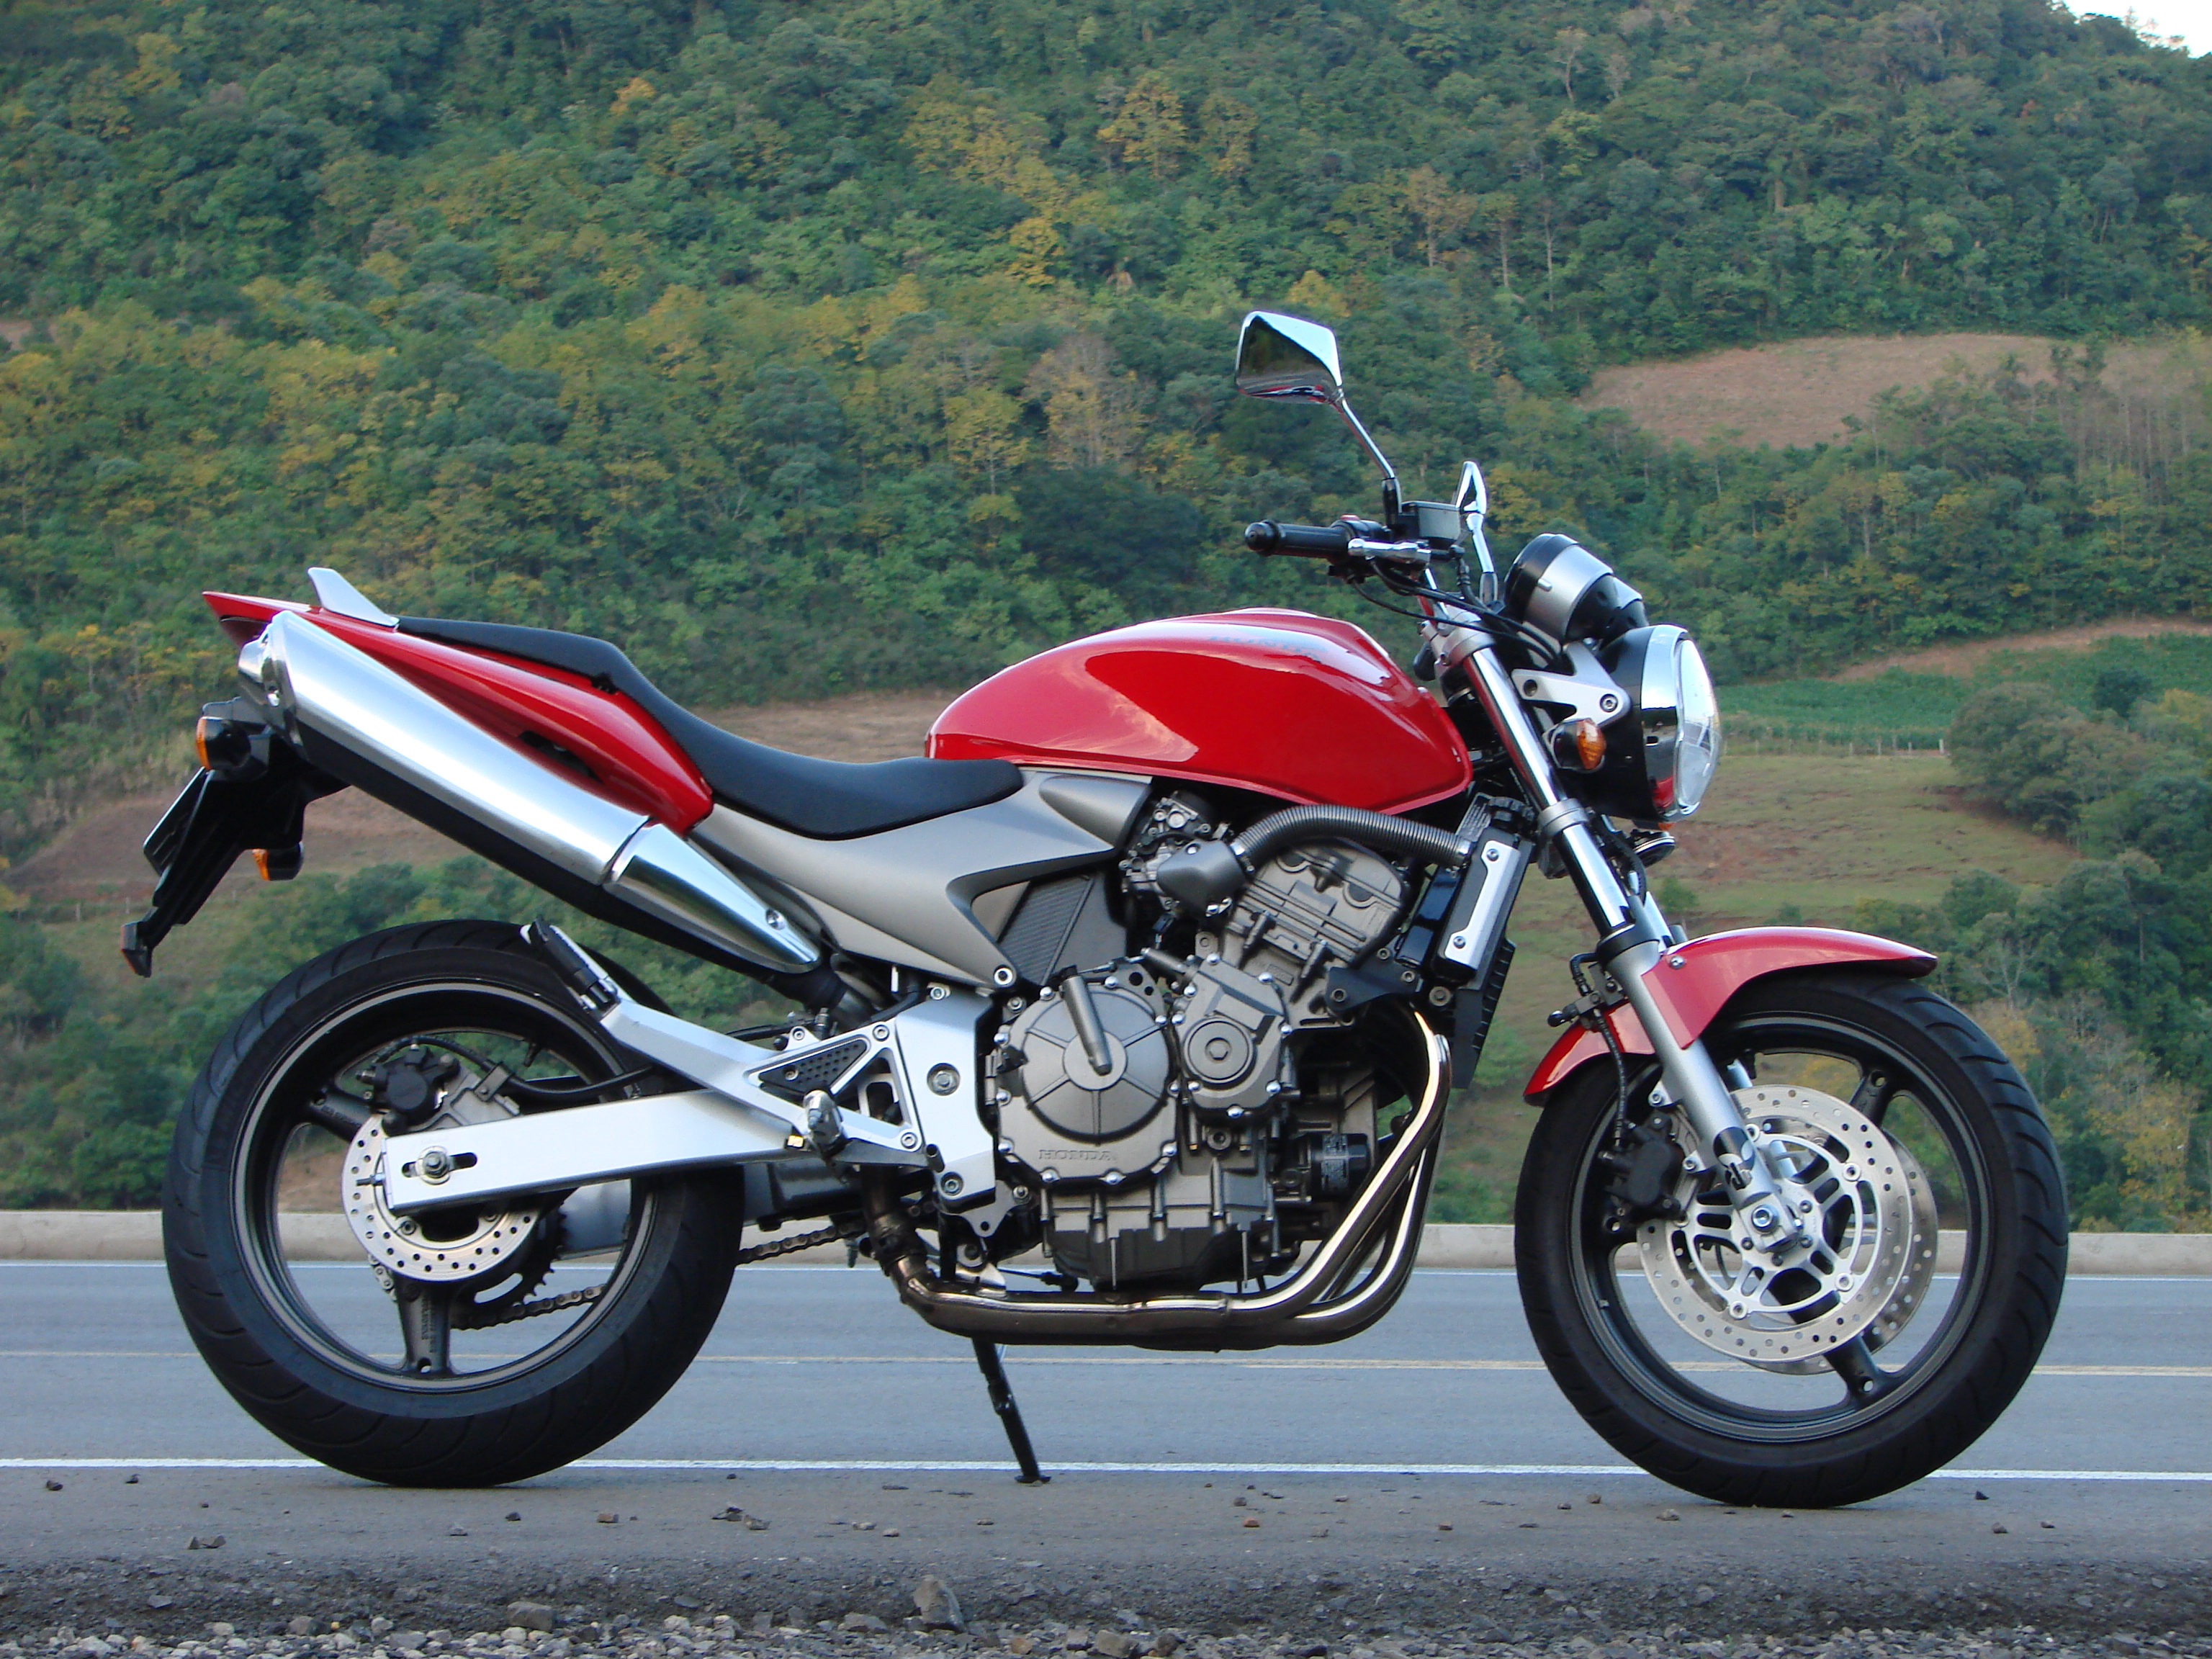 Honda cb600 hornet 2005 photo